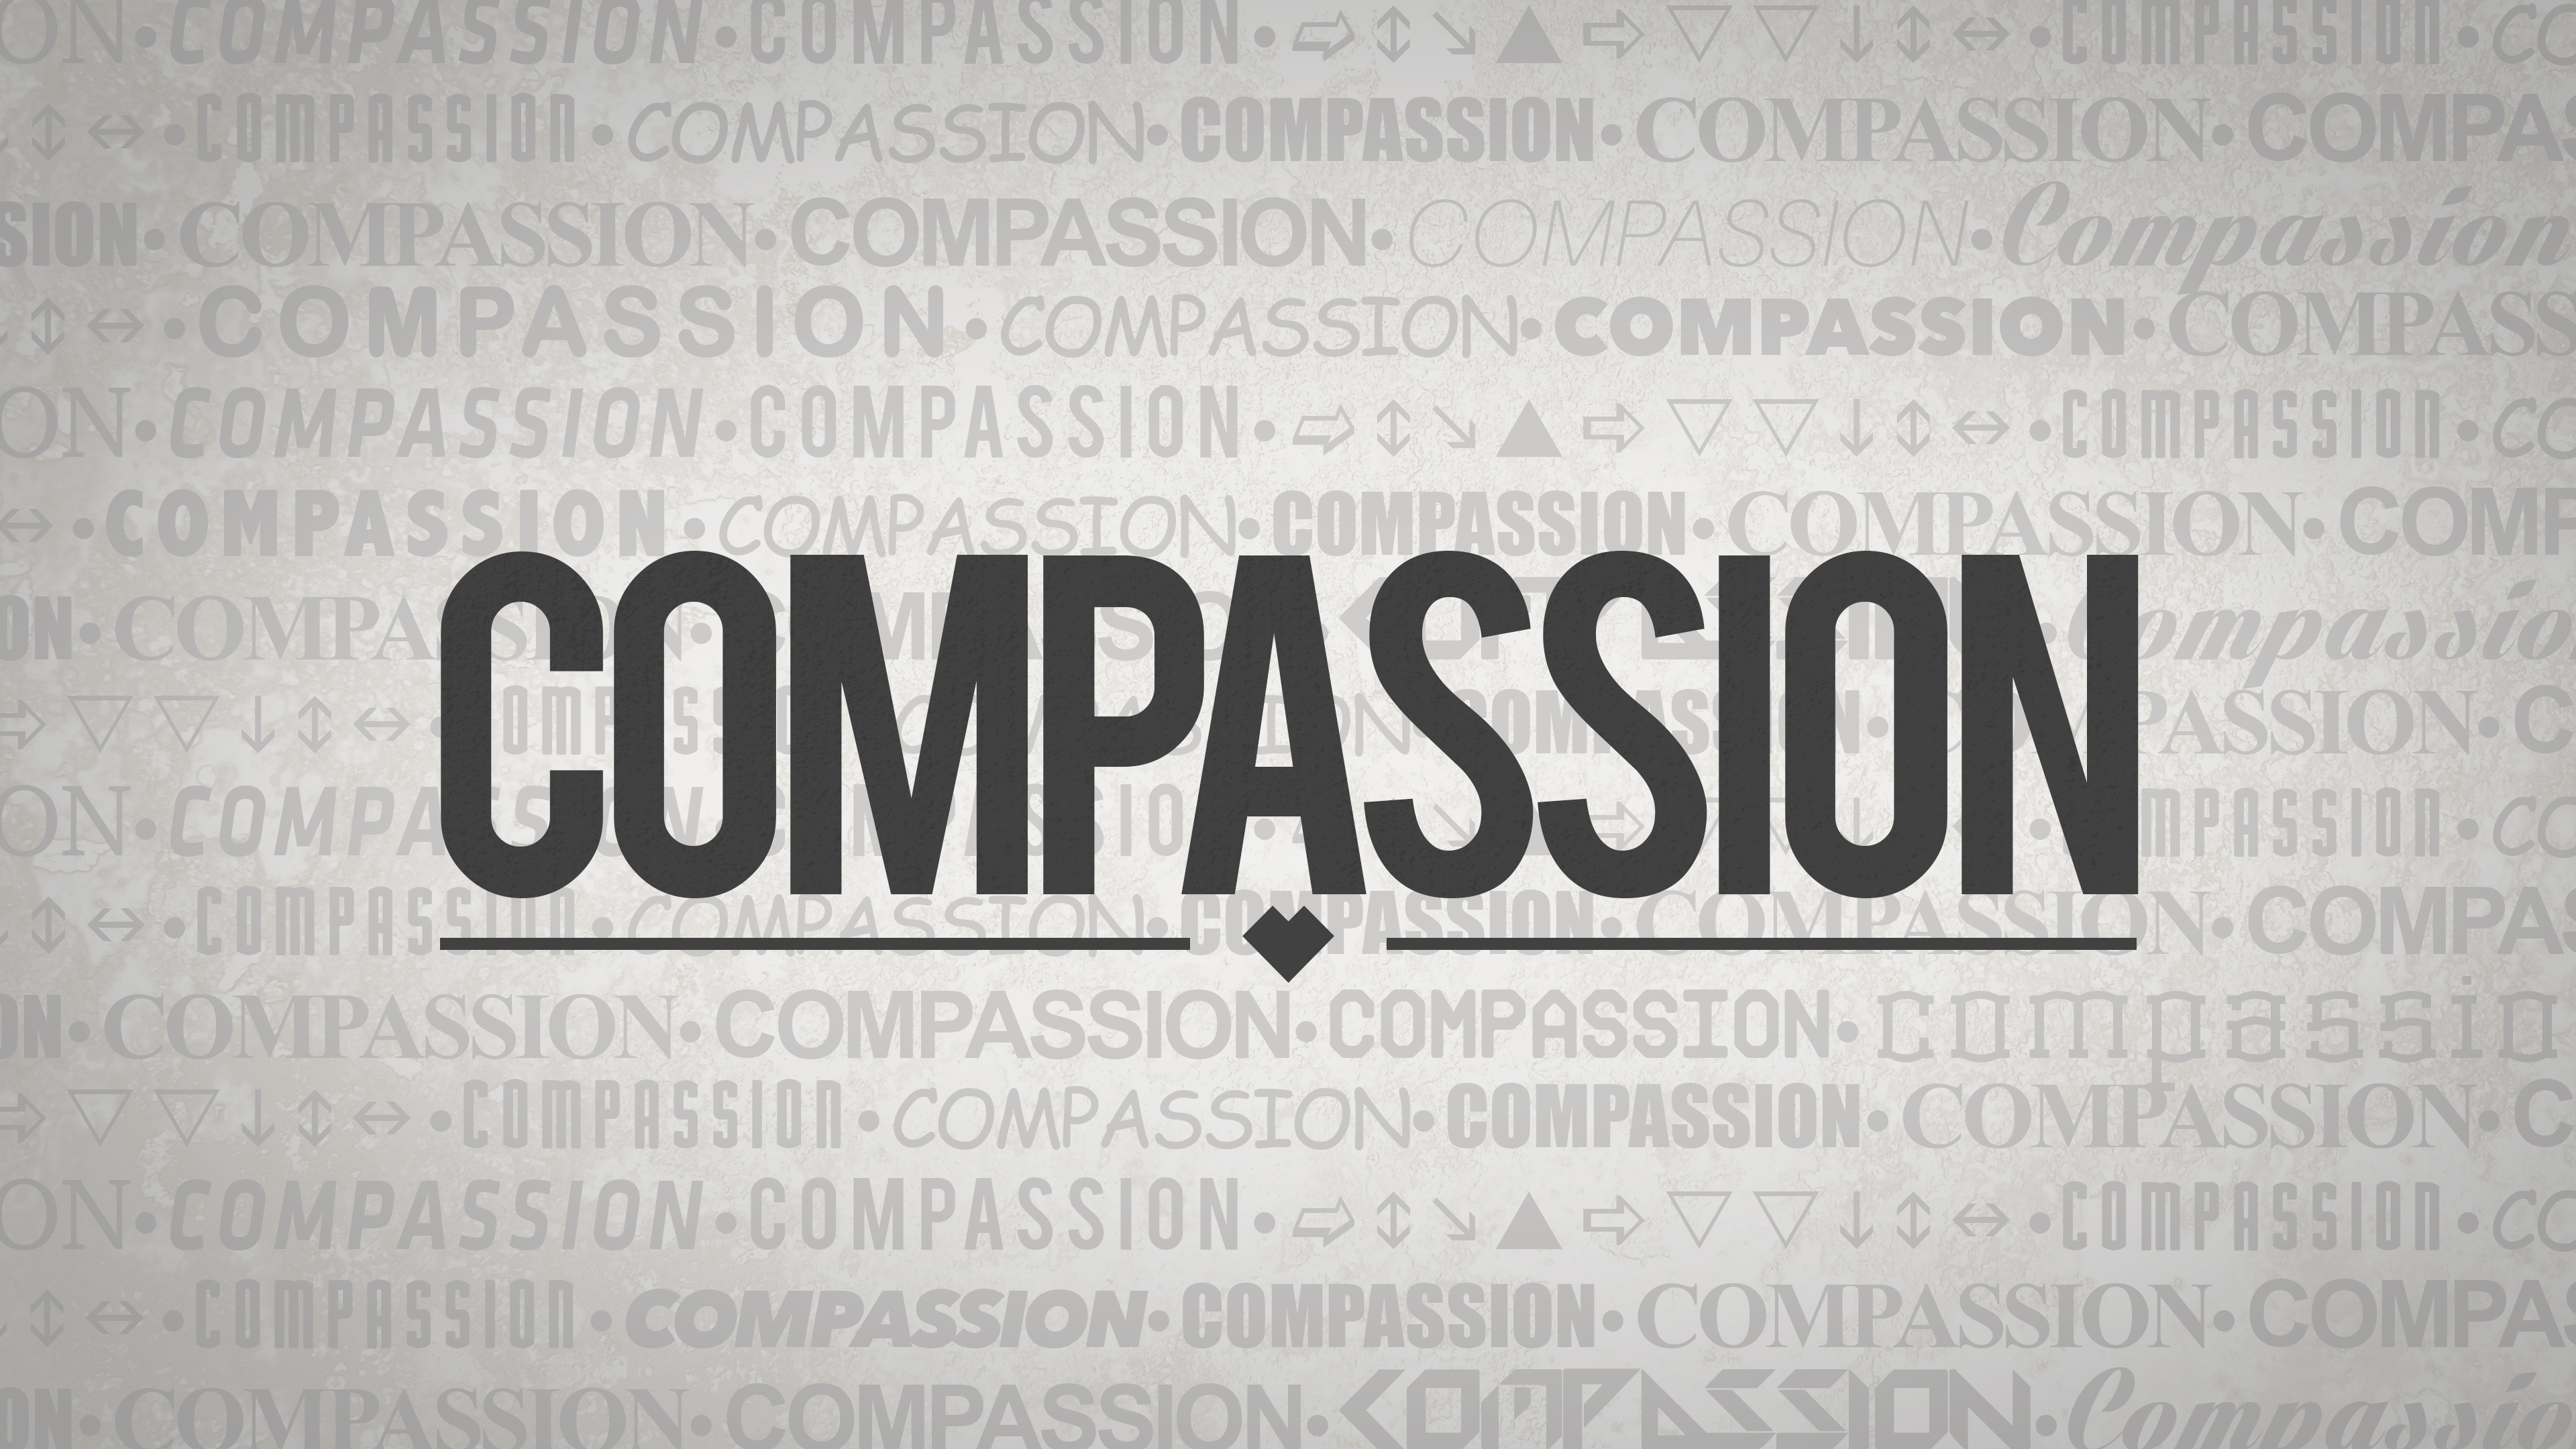 compassion makes a difference nmcs